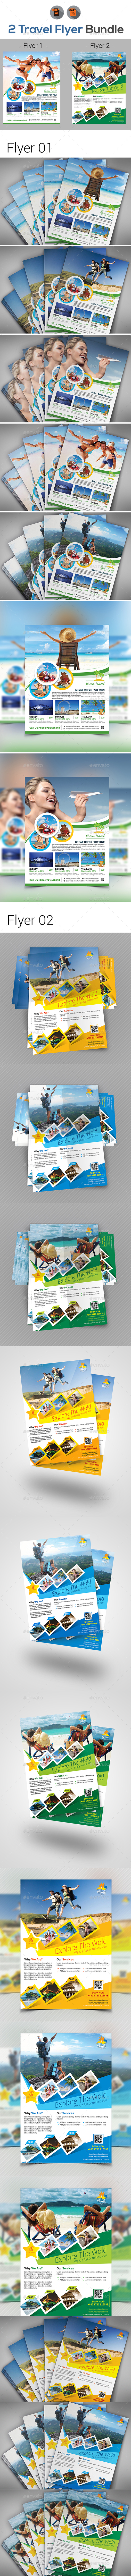 Tour & Travel Flyers Templates - Flyers Print Templates